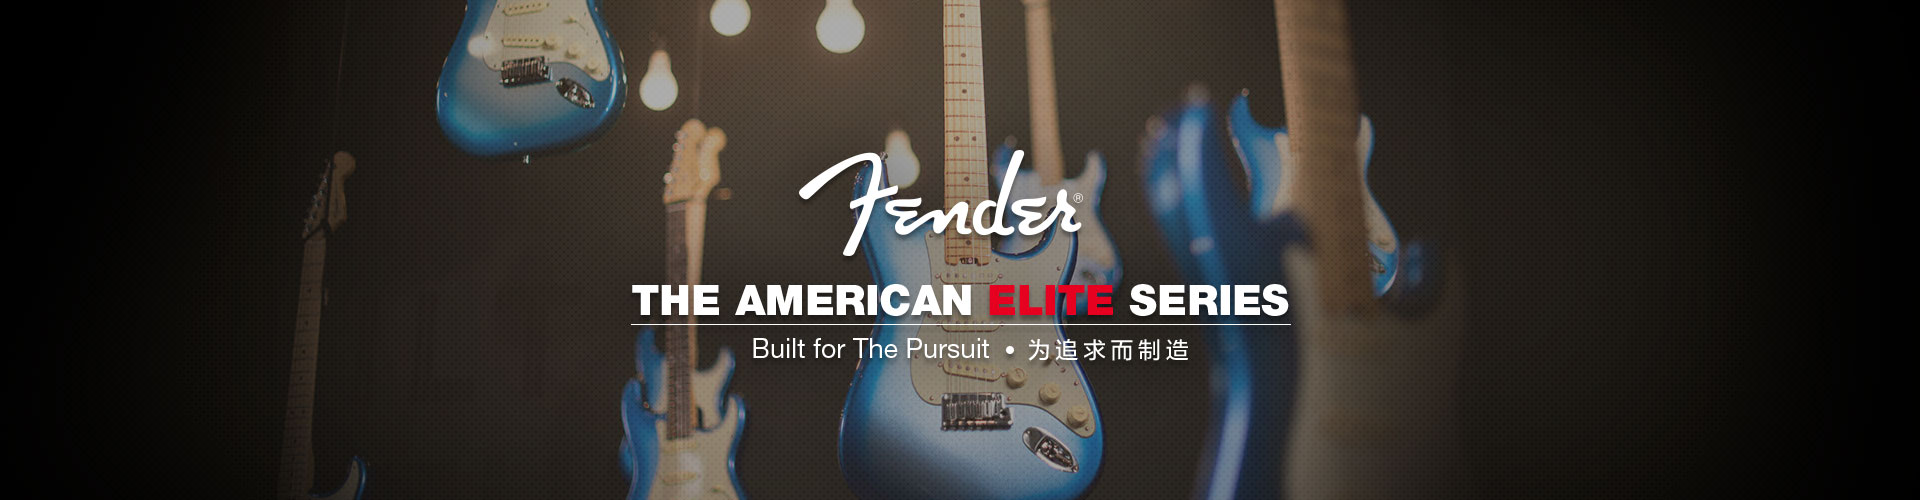 Fender-Elite-Series